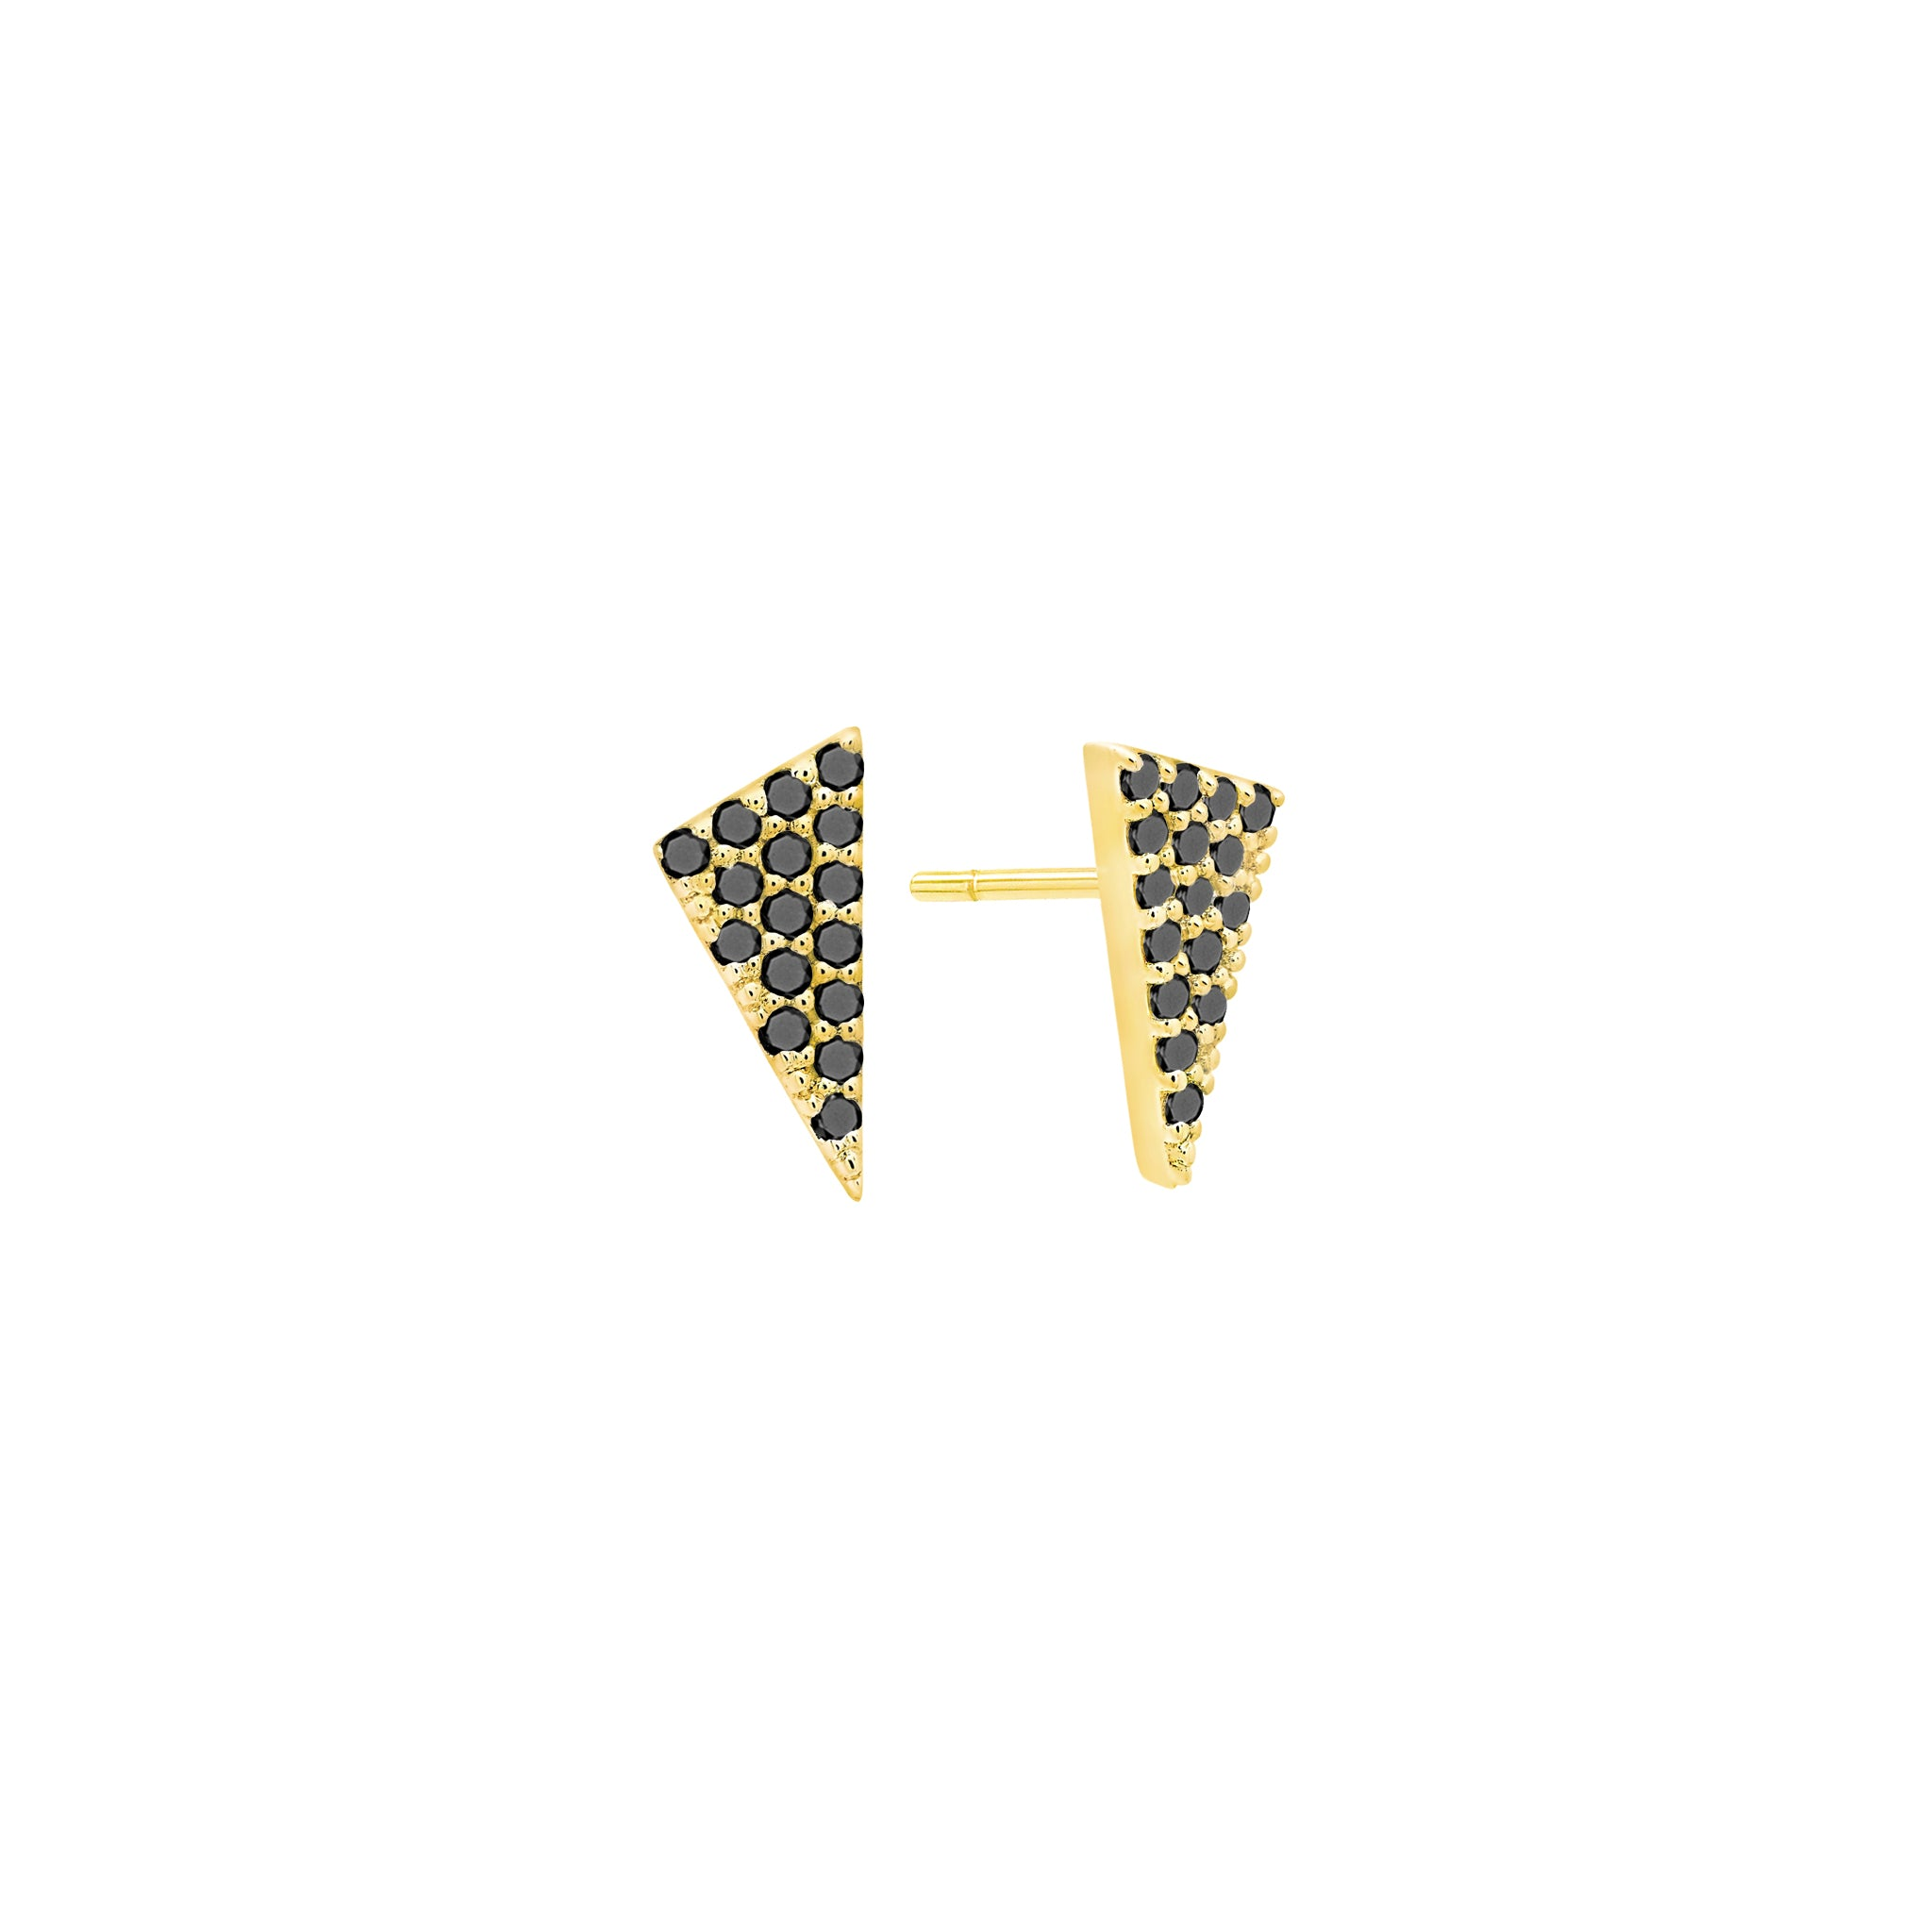 Diamond Triangle Stud Earrings | Gold with Black Diamonds